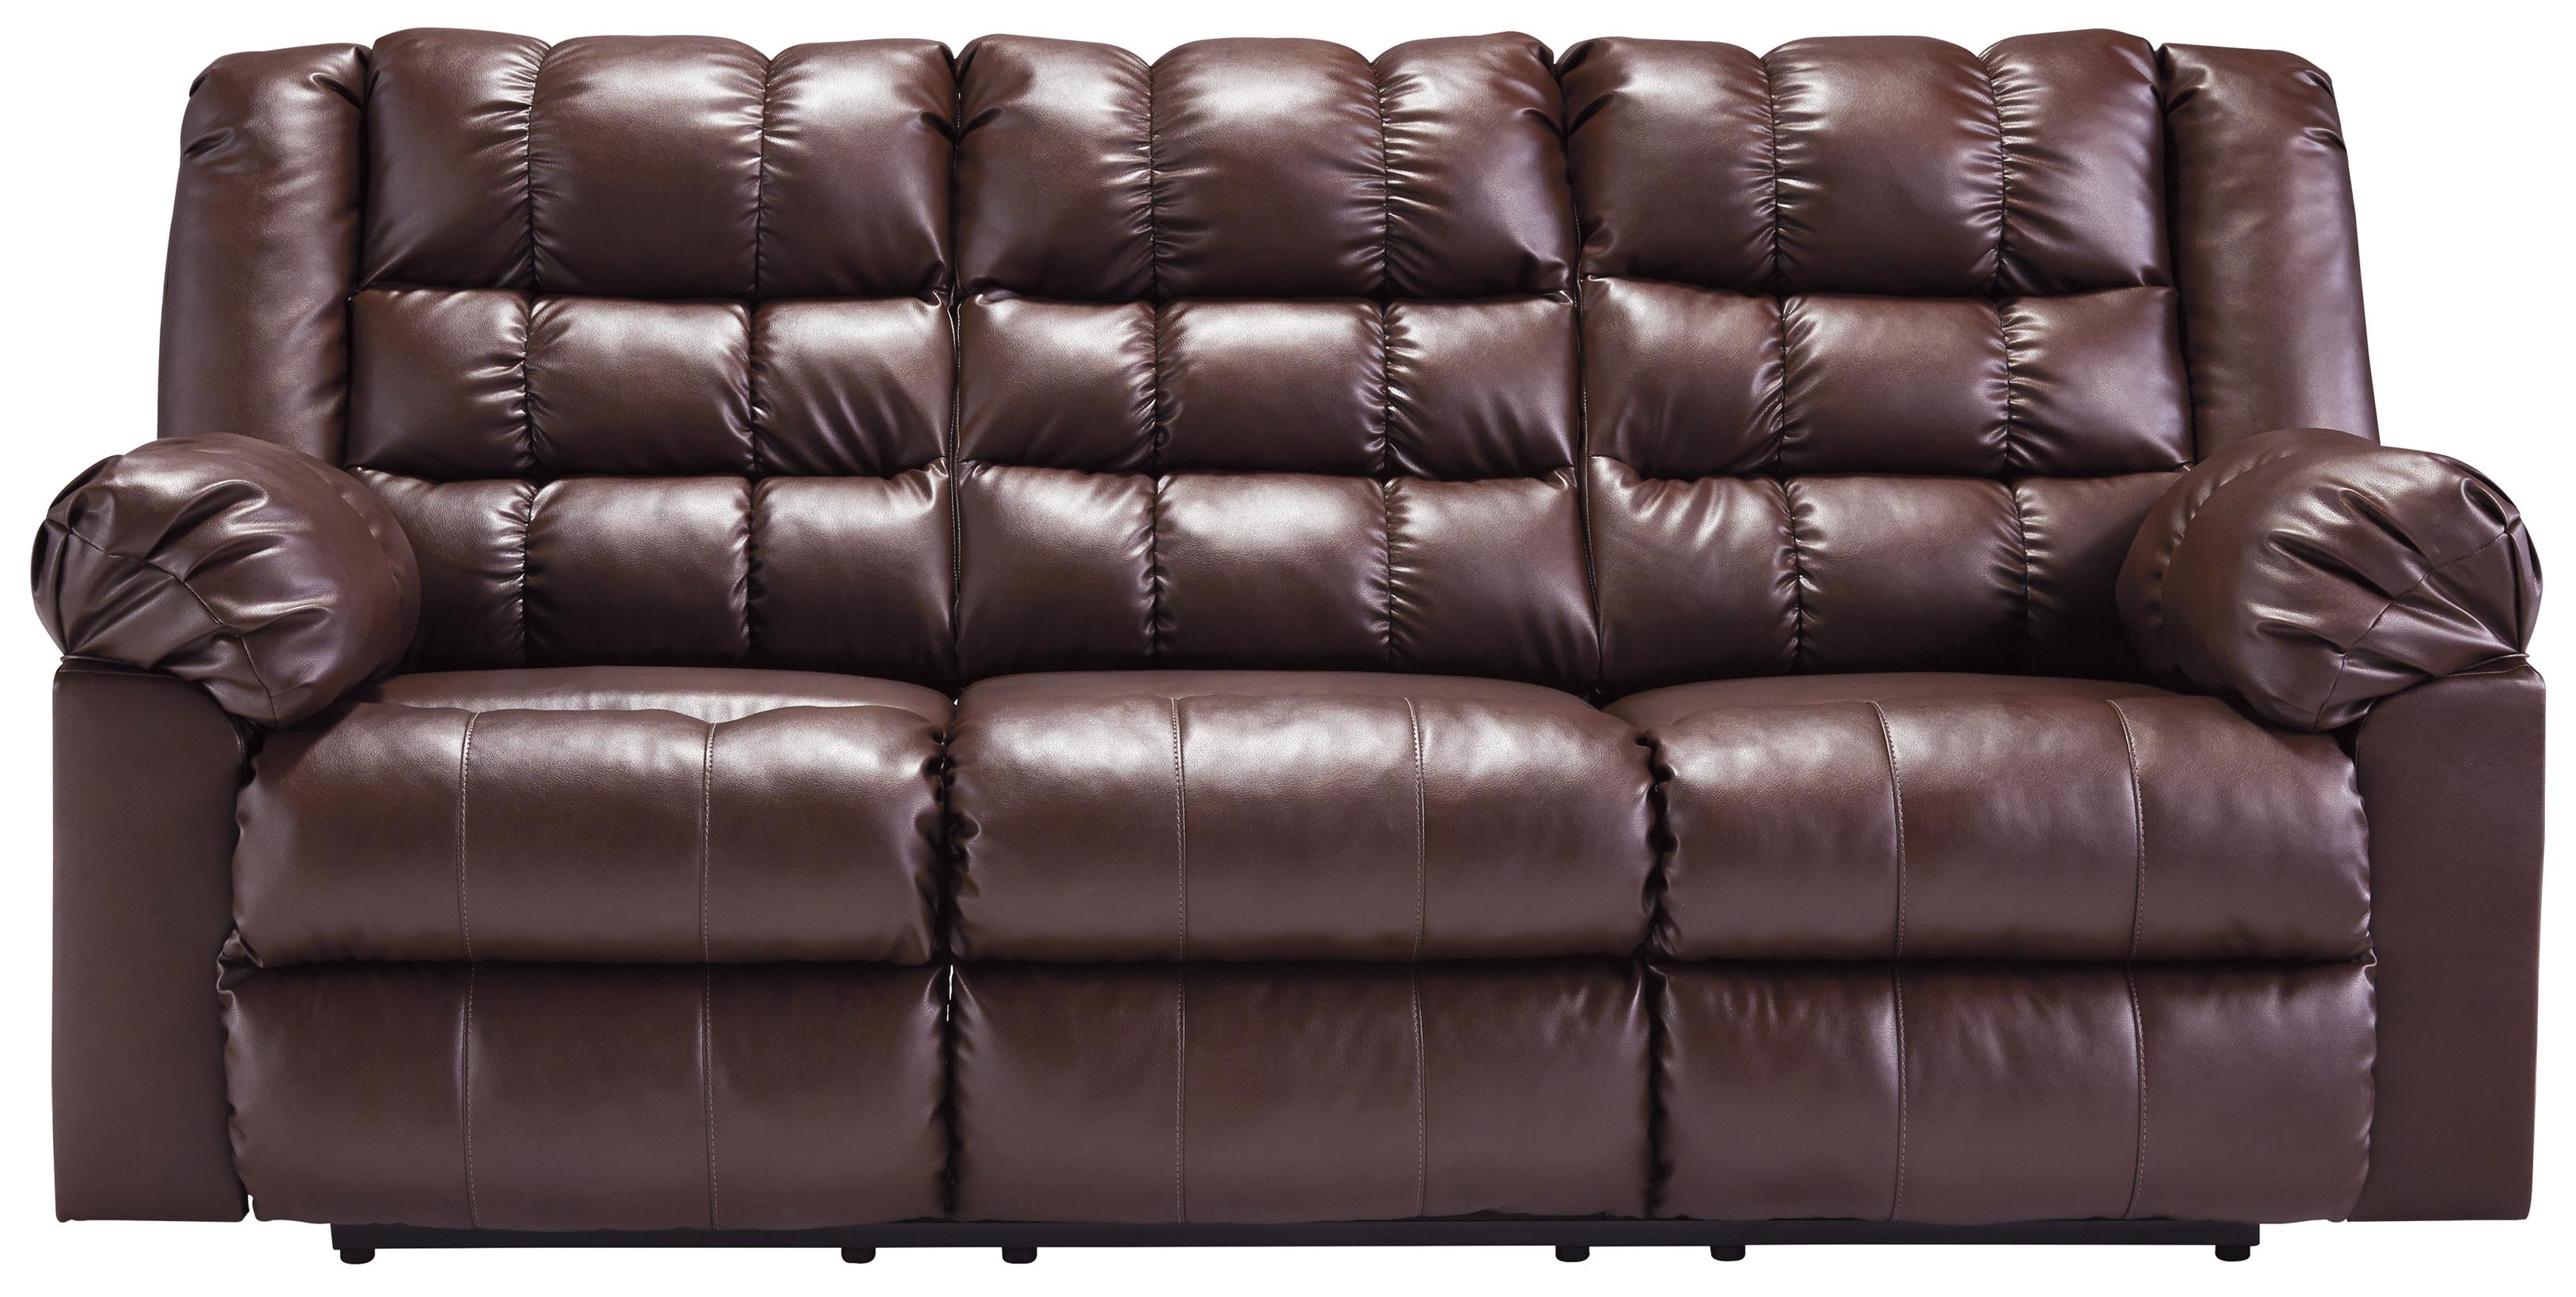 Signature Design by Ashley Brolayne DuraBlend® Reclining Sofa - Item Number: 8320288